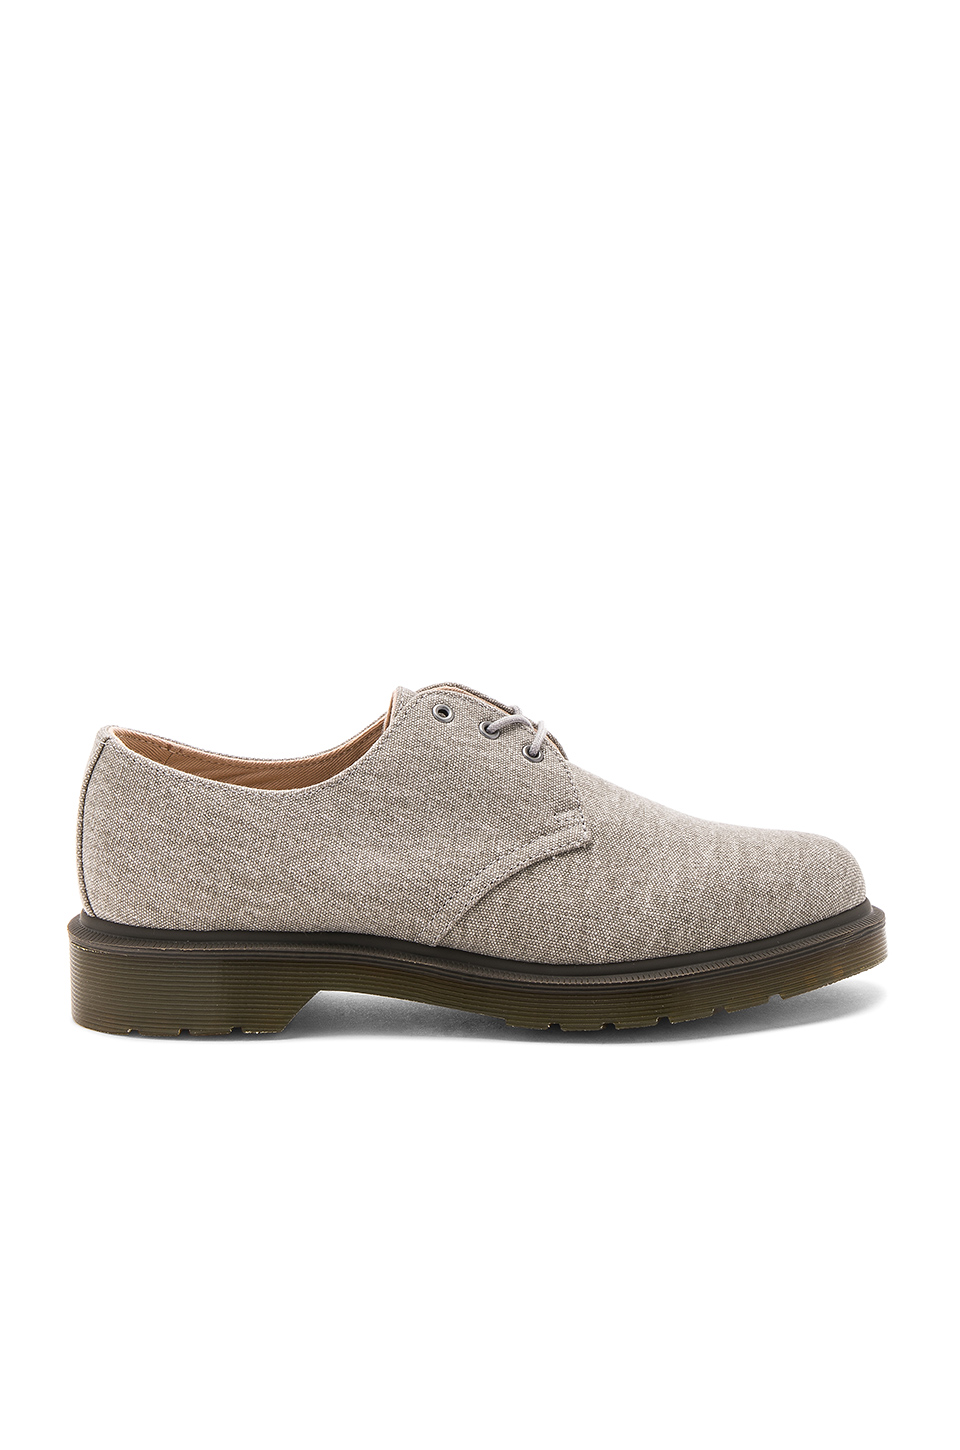 Dr. Martens Lester 3 Eye in Mid Grey